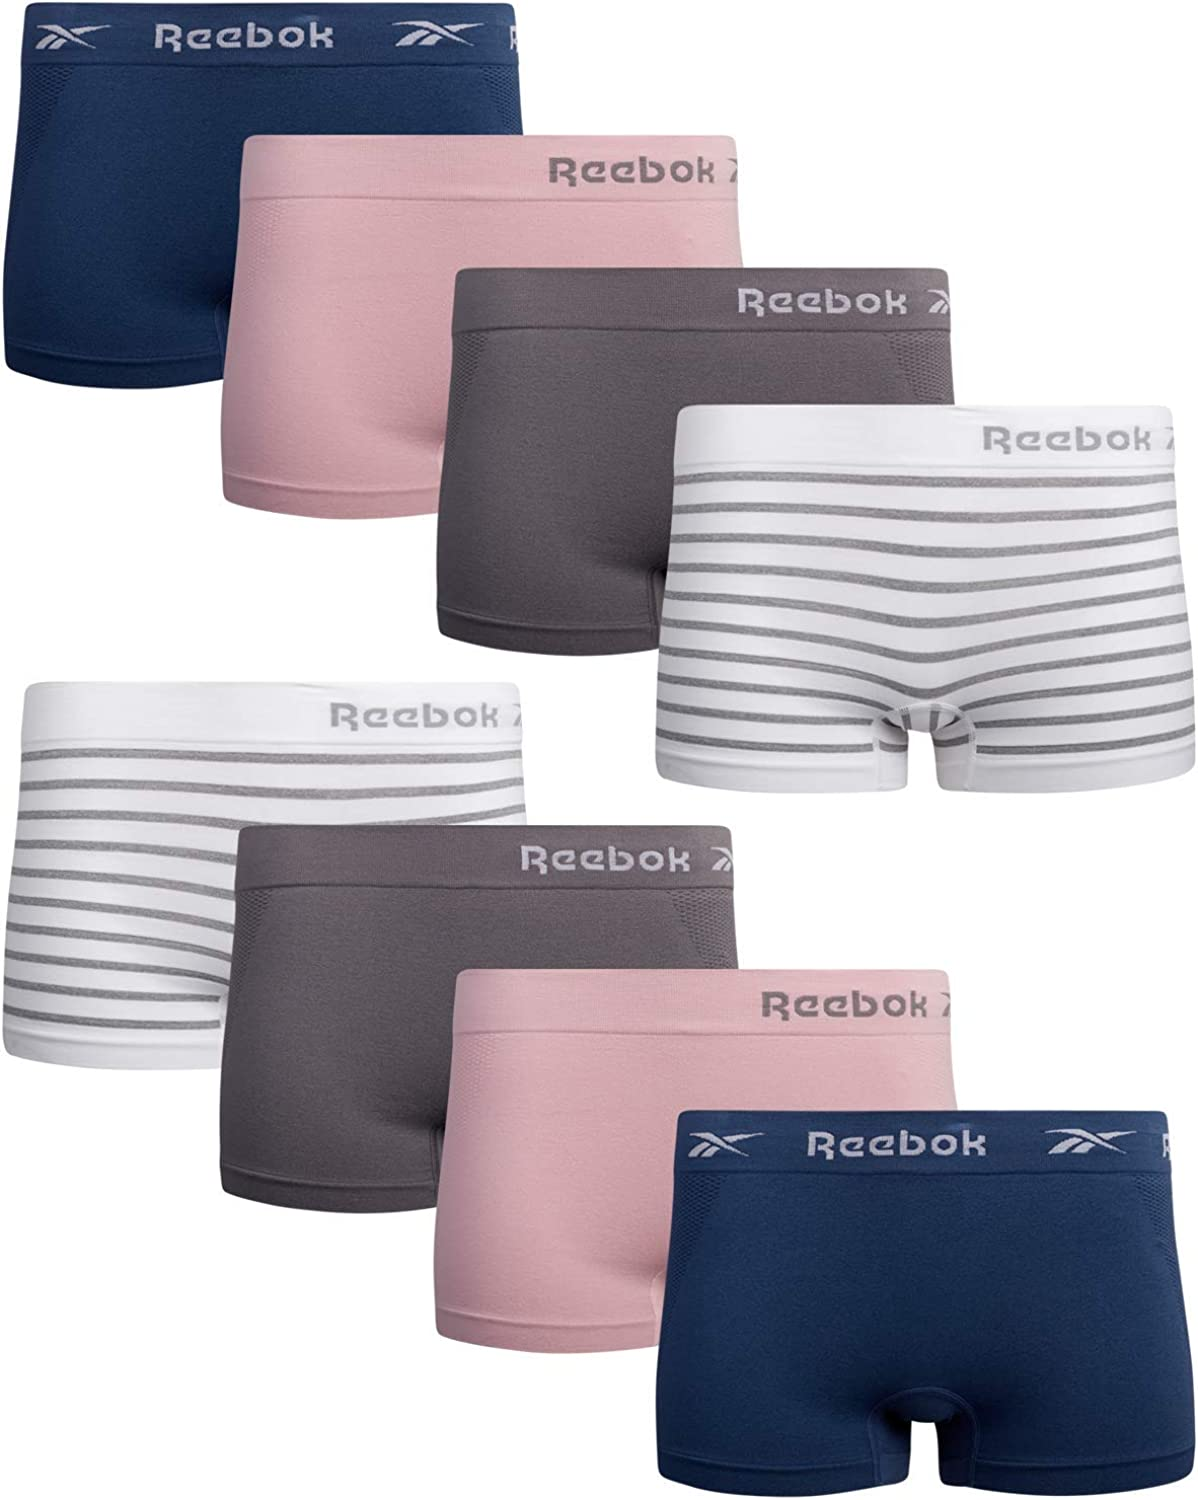 Reebok Women's Be super welcome Underwear - Seamless Pack Boyshort Free shipping anywhere in the nation 8 Panties